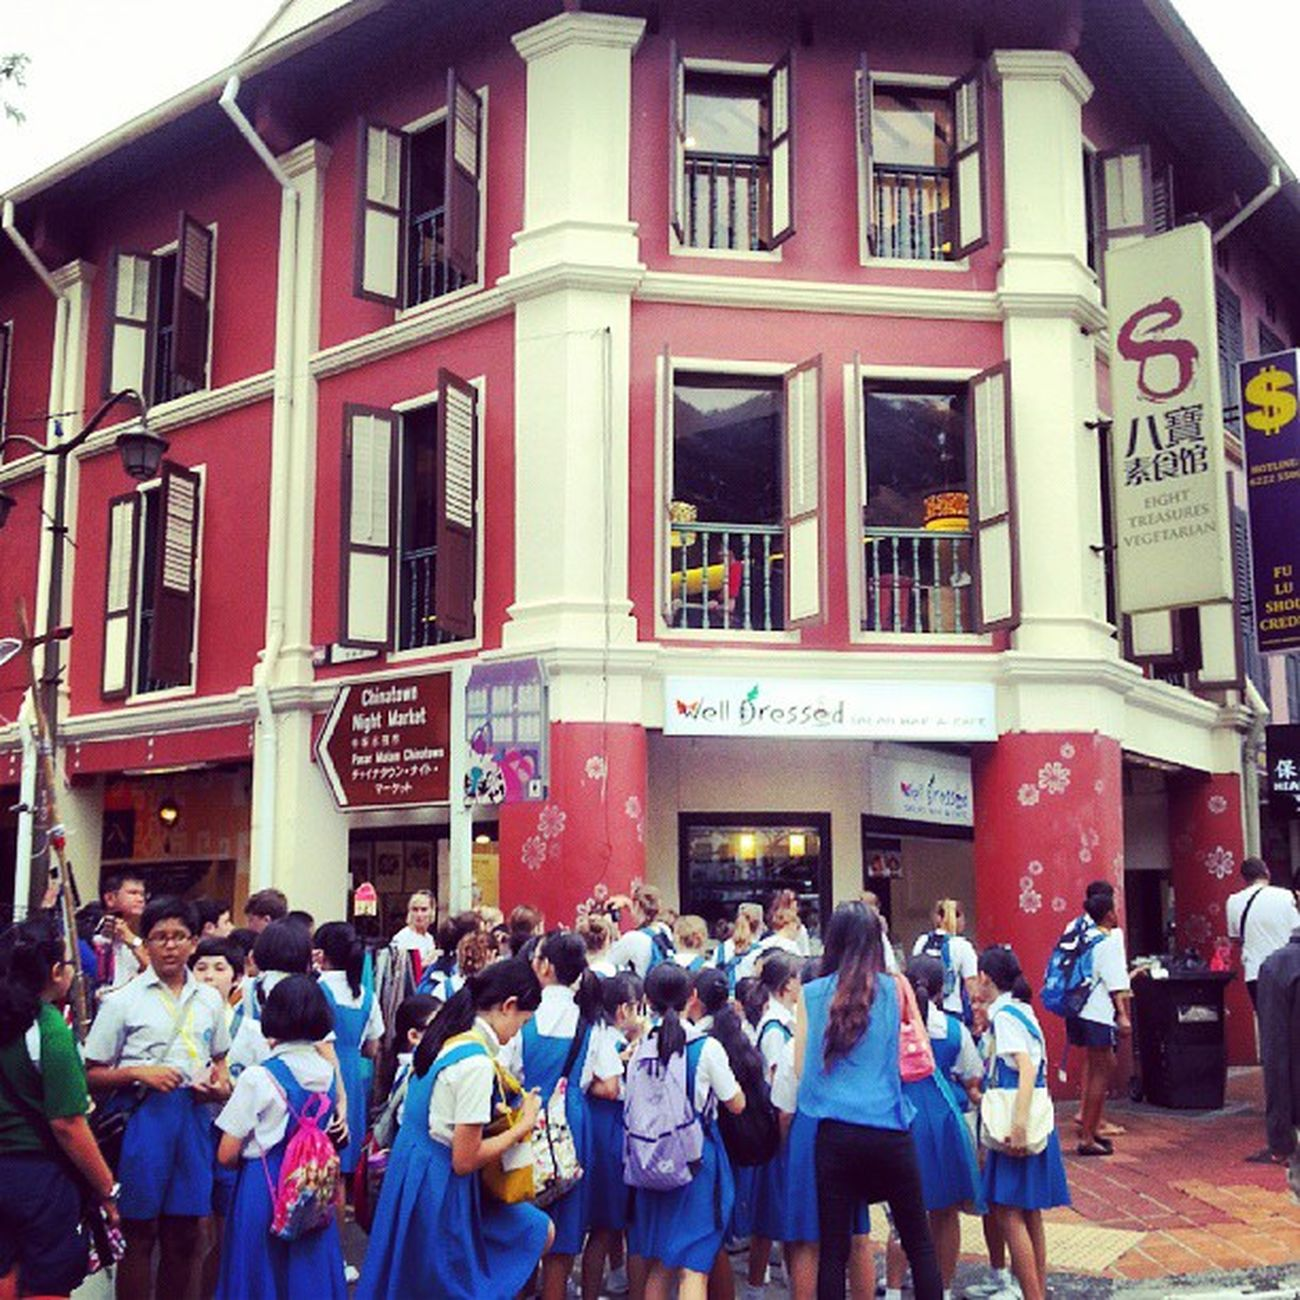 """School excursion in Chinatown...along South Bridge Road..."" Wow_singapore SGmemory Singaporeafresh Streetphoto Streetphotography Streetalma Sghub Spacesintheheartlands Sgig Singapore Sginstagram Streetstylesgf Ourlifetoday Numberofcolors Numberofn Mybest_street Mybest_shot Life Jj_streetphotography Jj  Ig_singapore Ig_street Ic_thestreets Iluvsg Gf_singapore igerssingapore instasg instagram_sg instalife gf_daily"